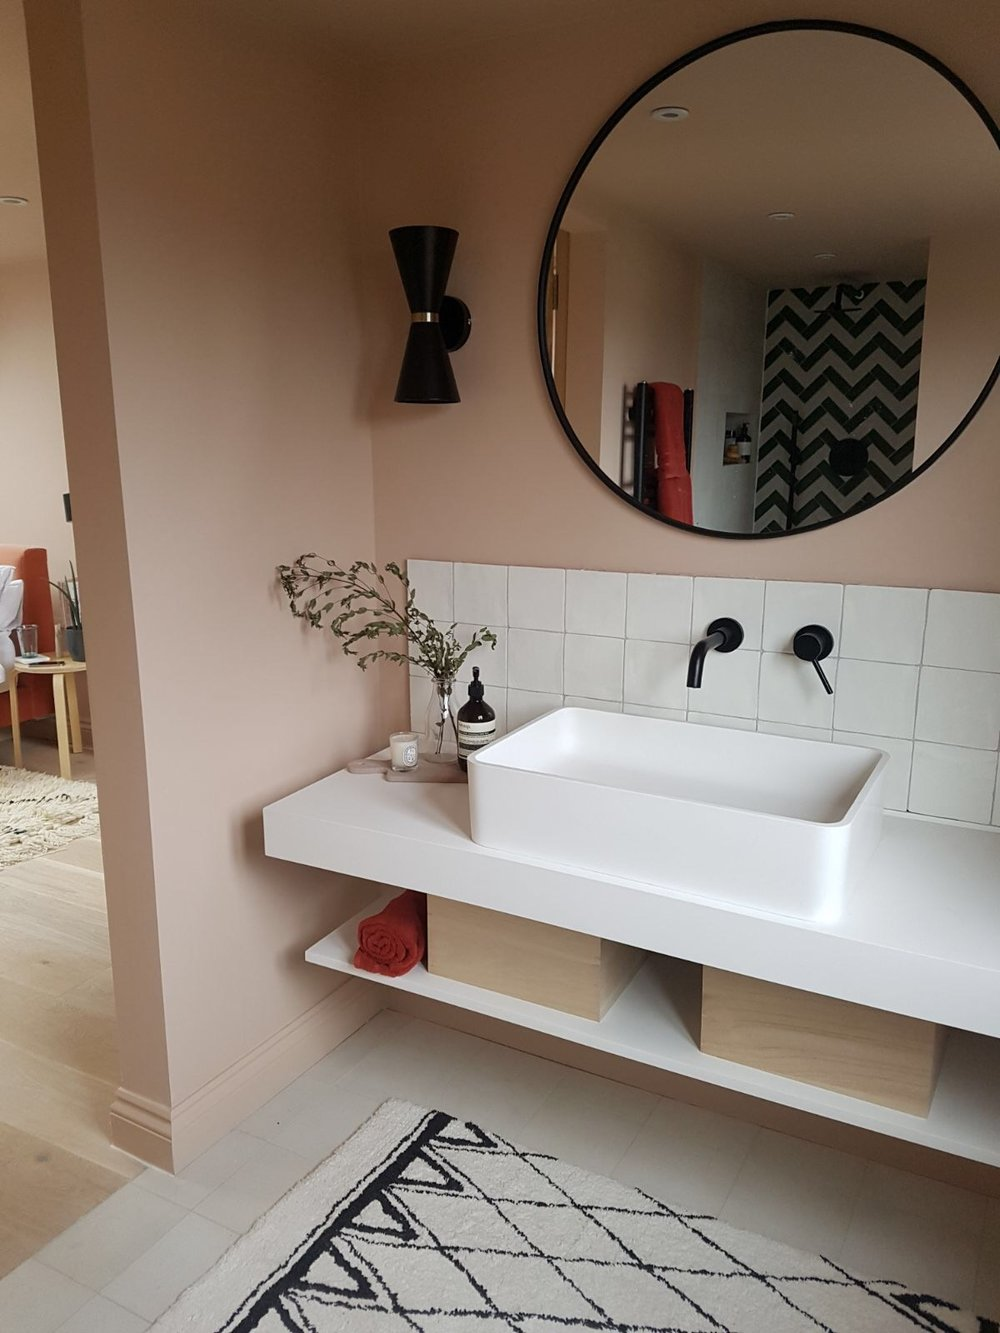 The end result - The bathroom with a little view into the main bedroom area